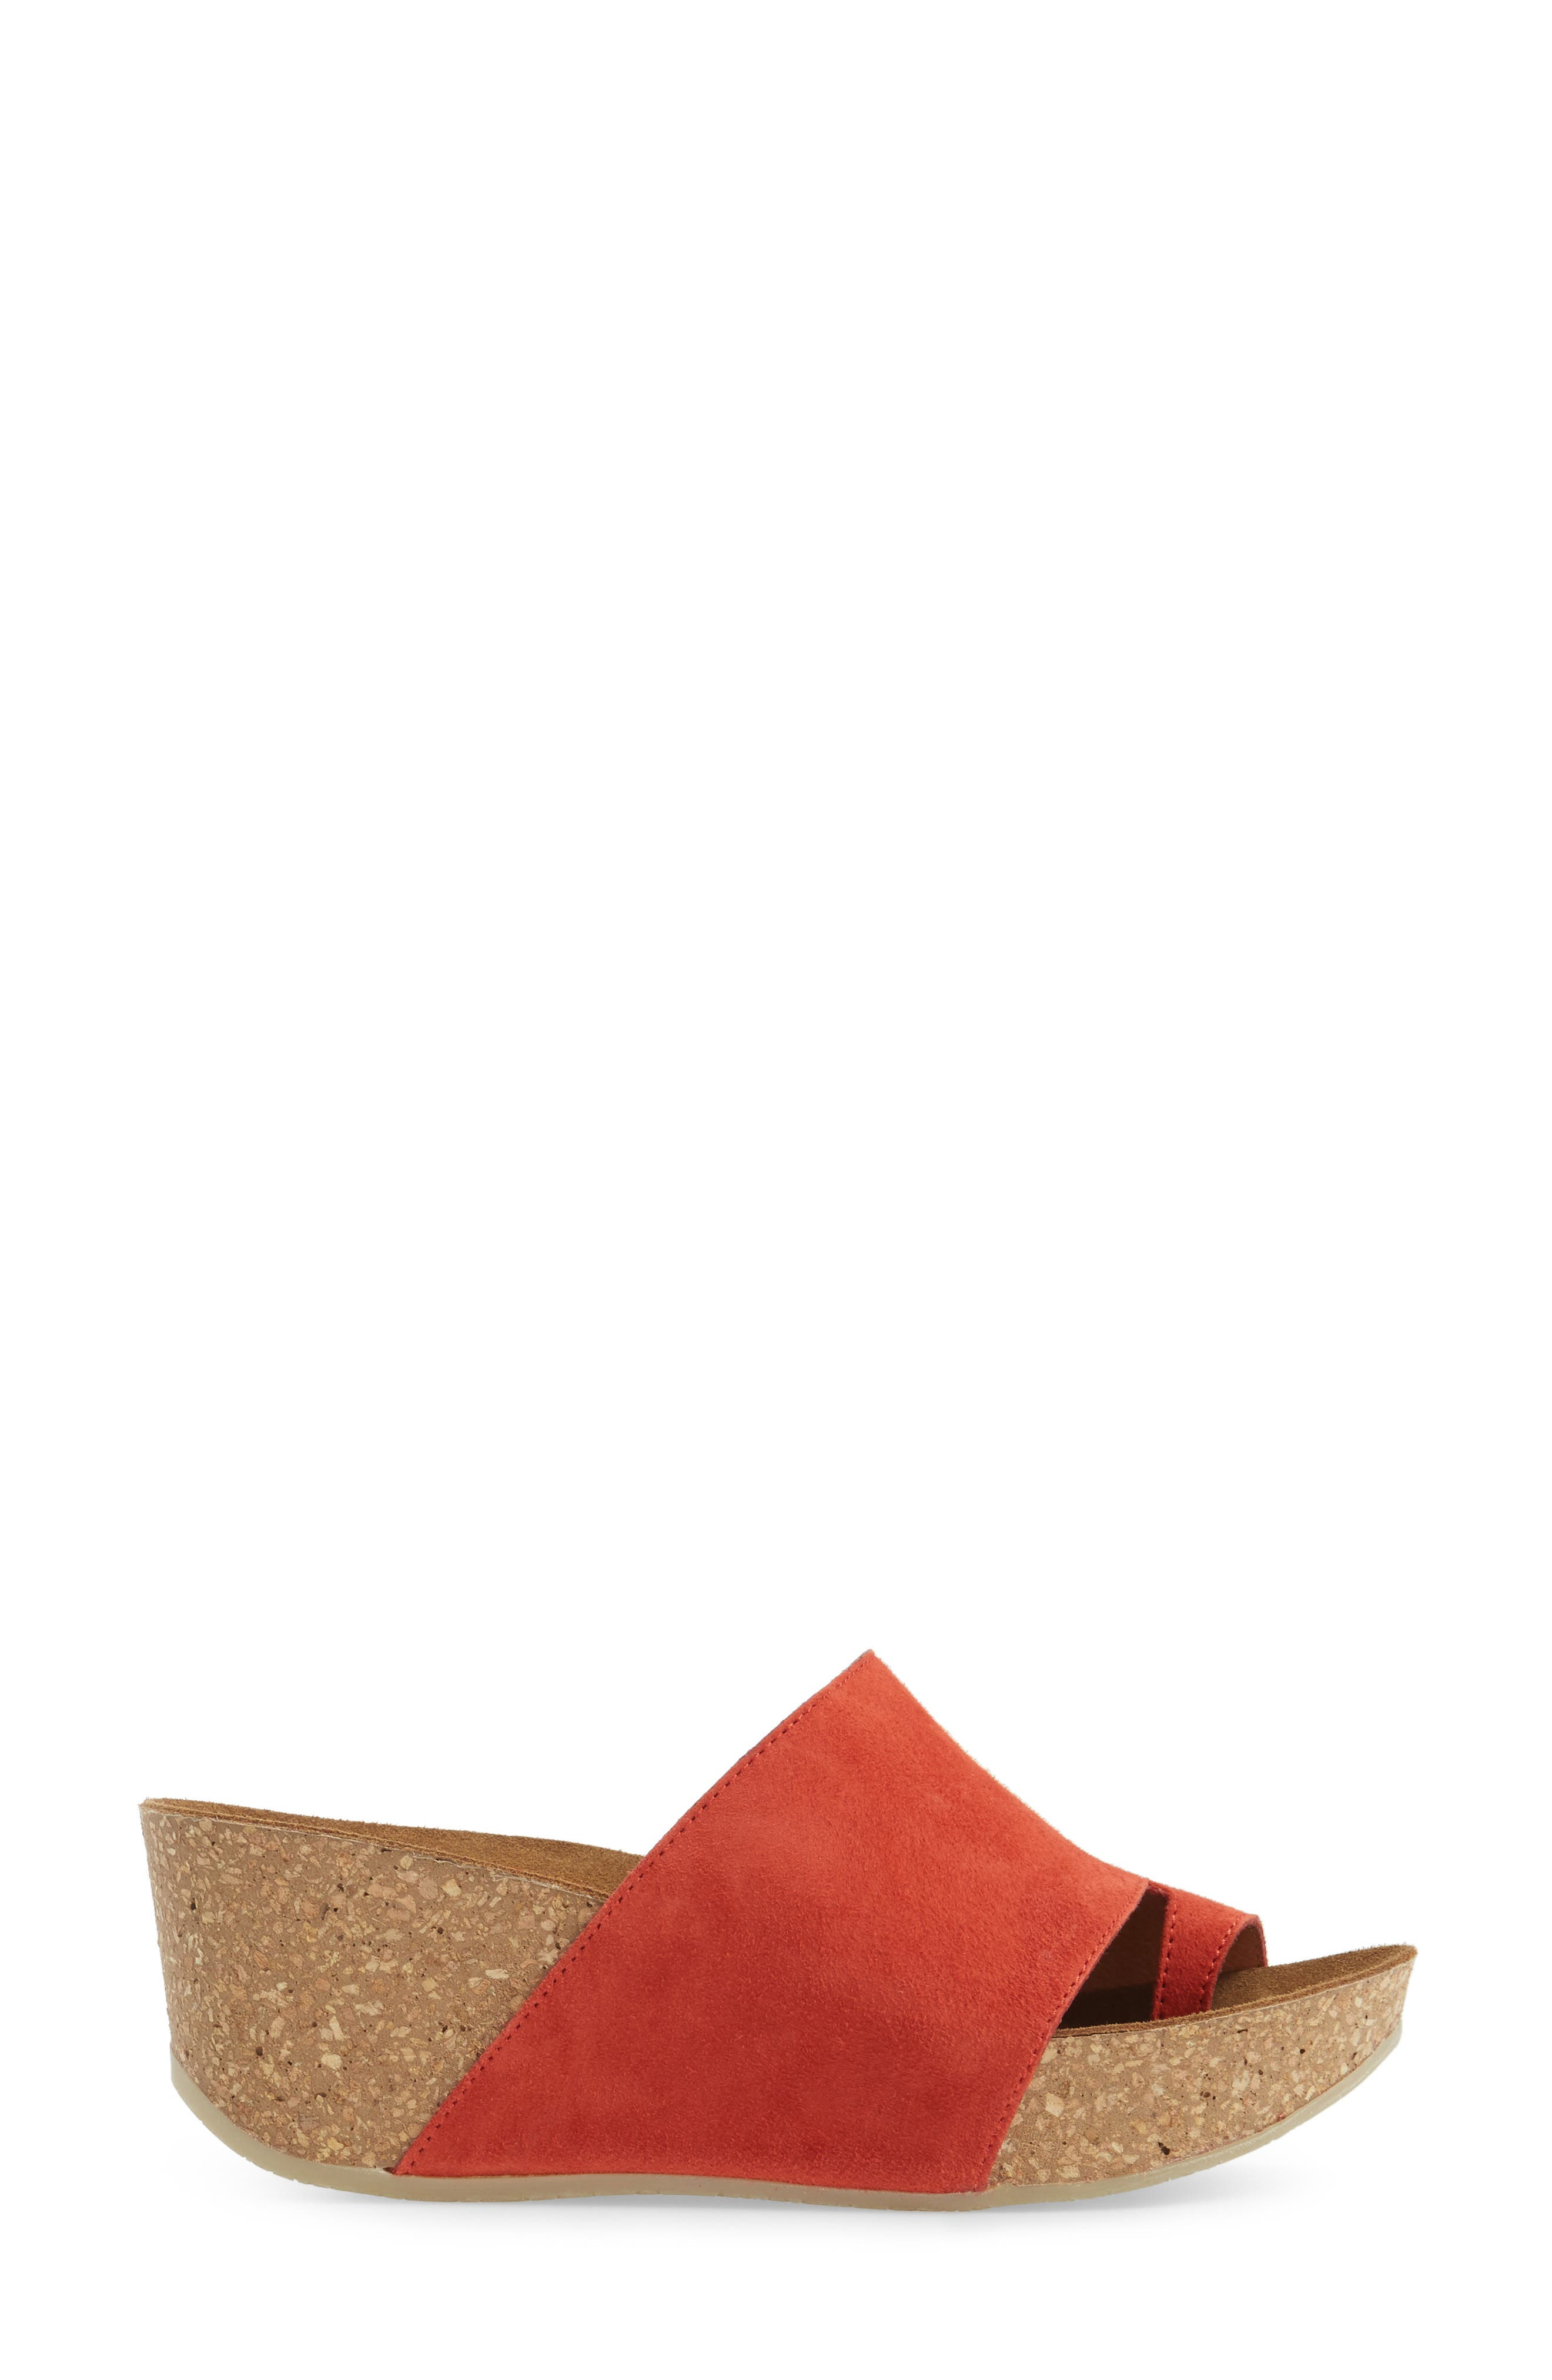 Donald J Pliner Ginie Platform Wedge Sandal,                             Alternate thumbnail 21, color,